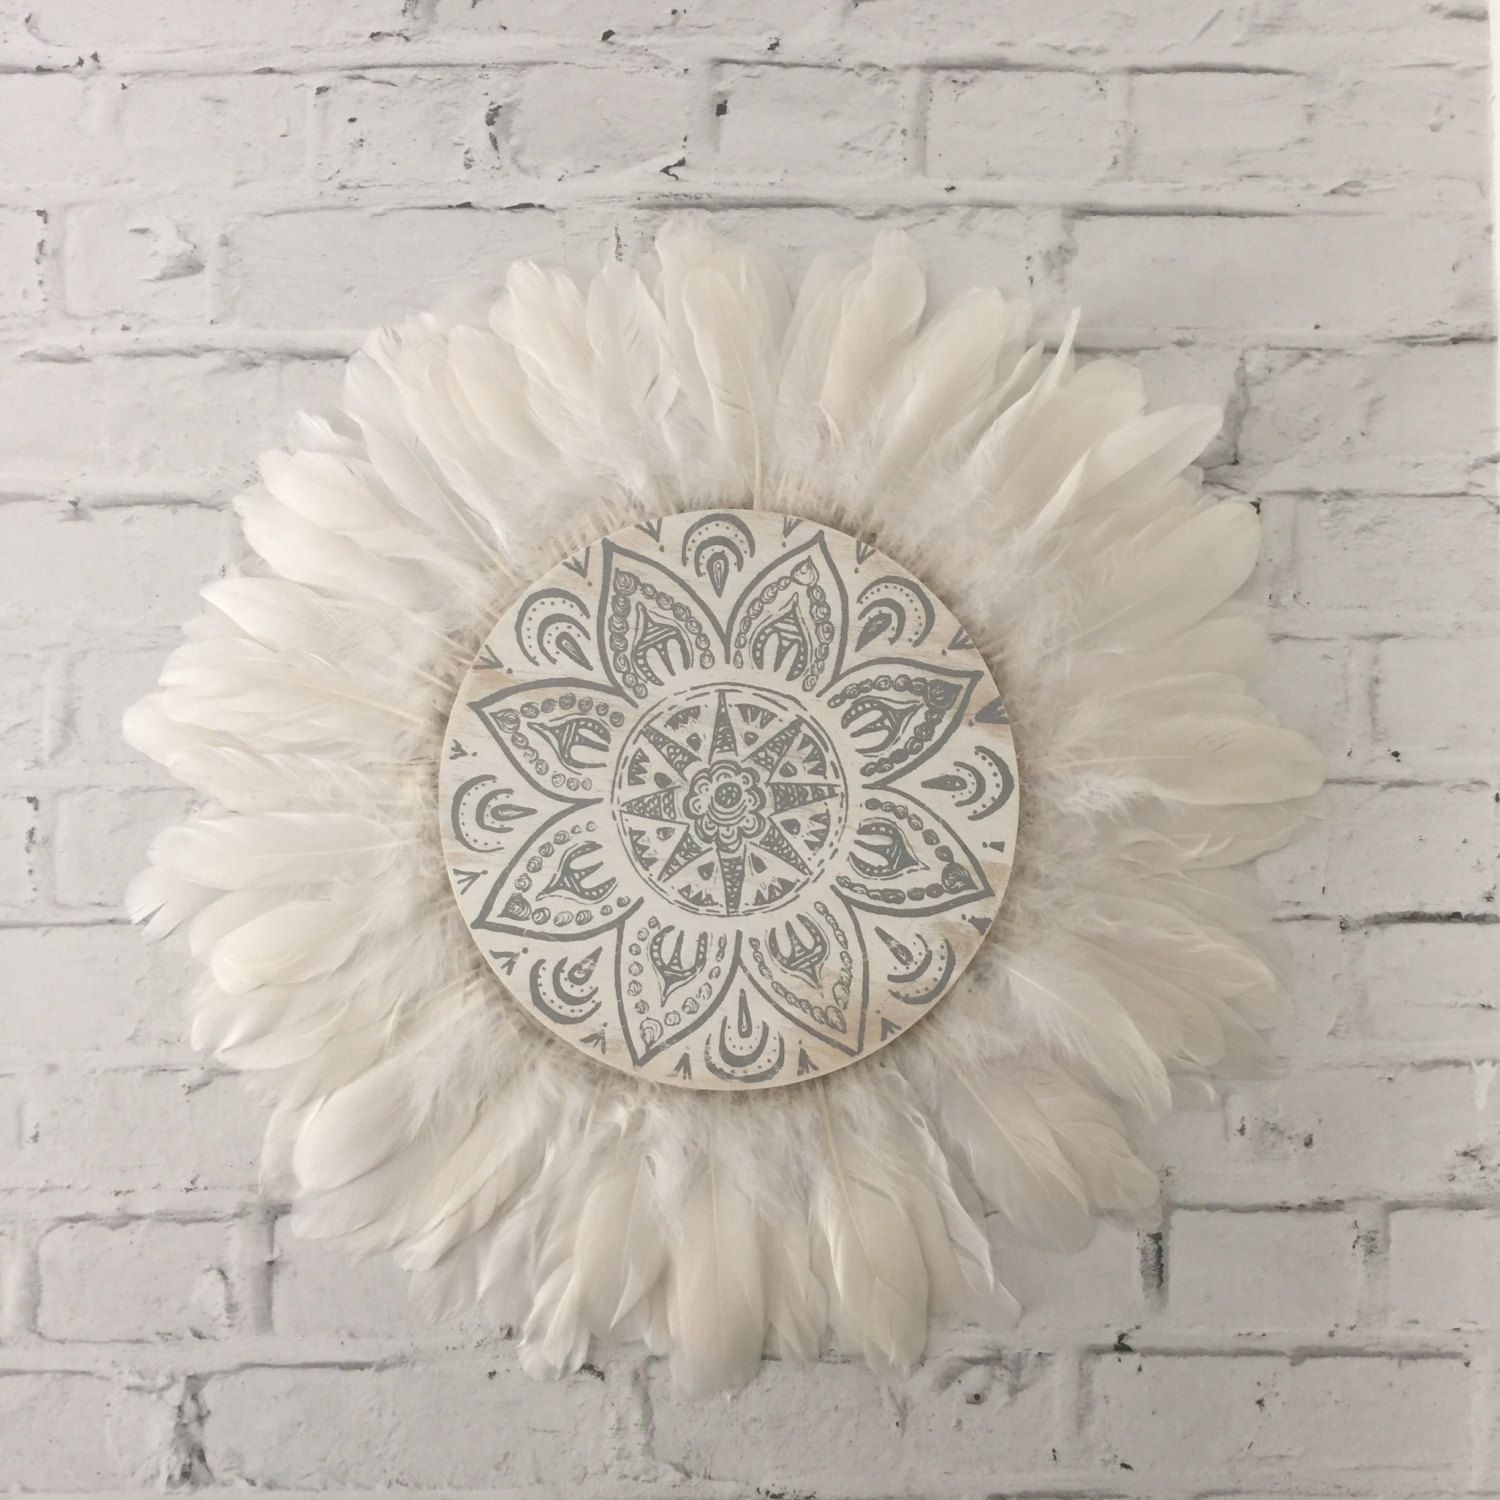 Interesting Wall 3D Round Wall Sculpture Organic Texture Art Gold Throughout 2017 Round Wall Art (Gallery 10 of 20)